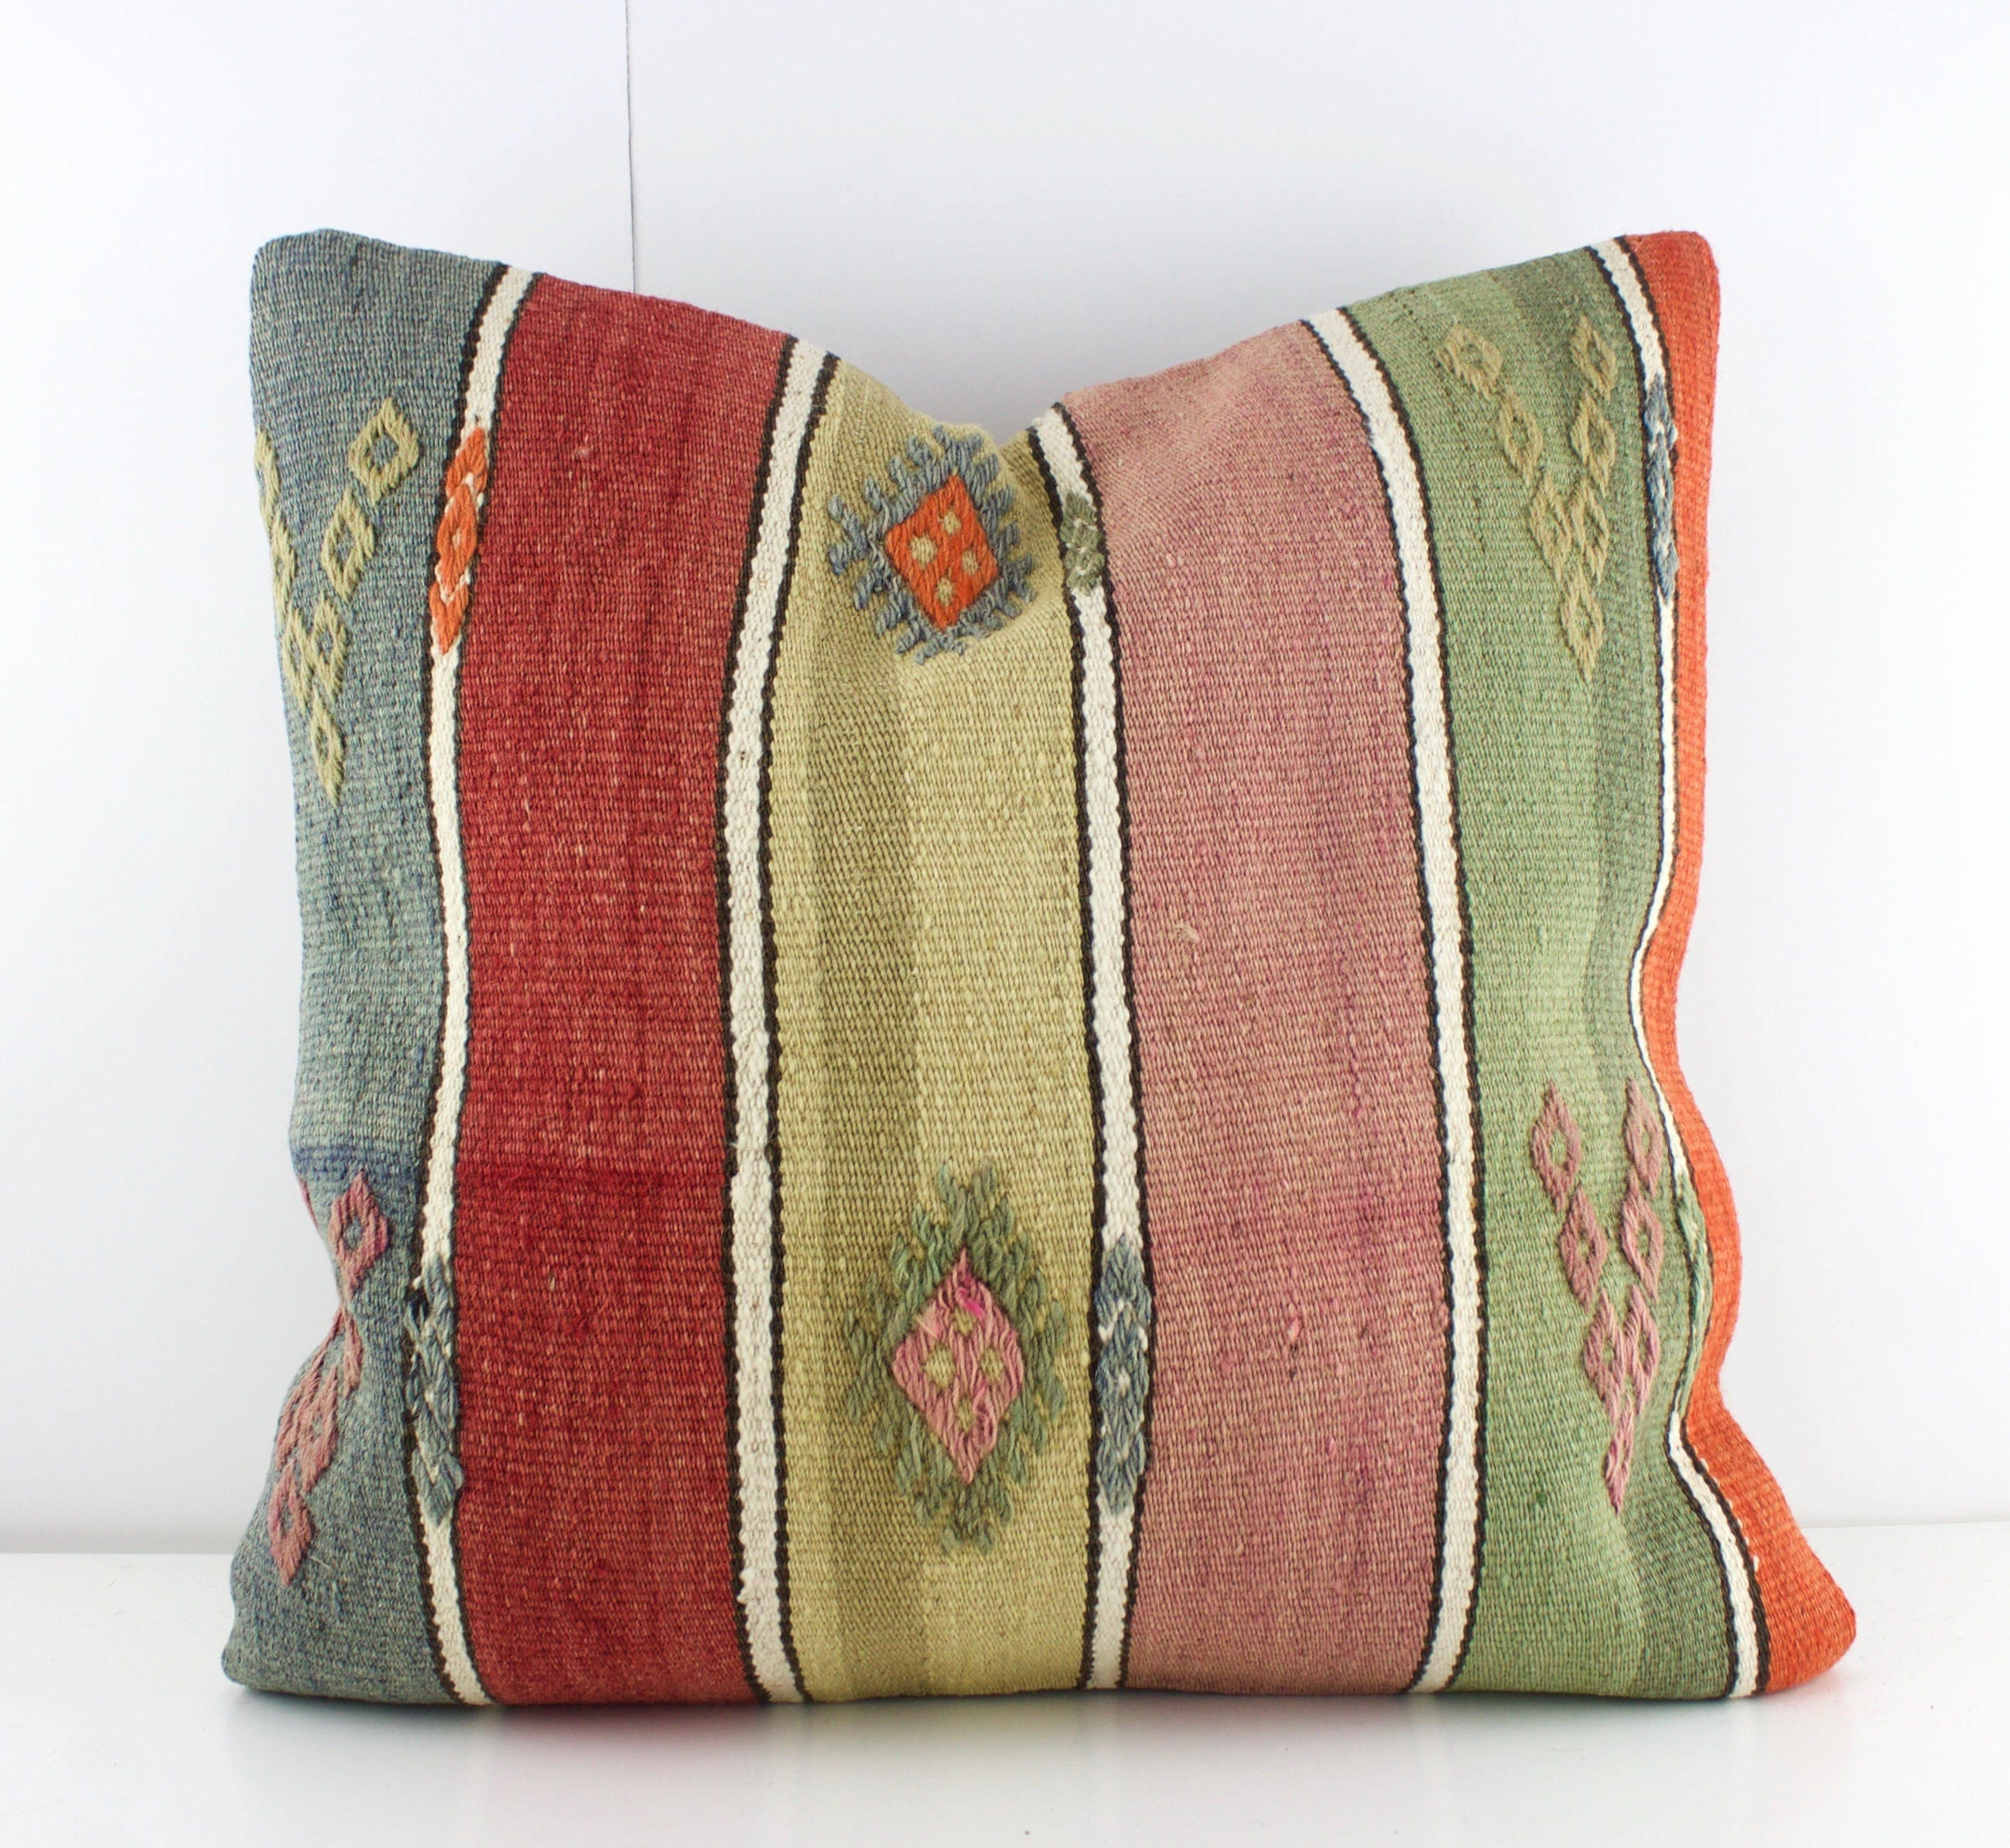 Decorative Pillows Kilim : Kilim Pillow Decorative Pillows For Couch Kilim Pillows Kilim